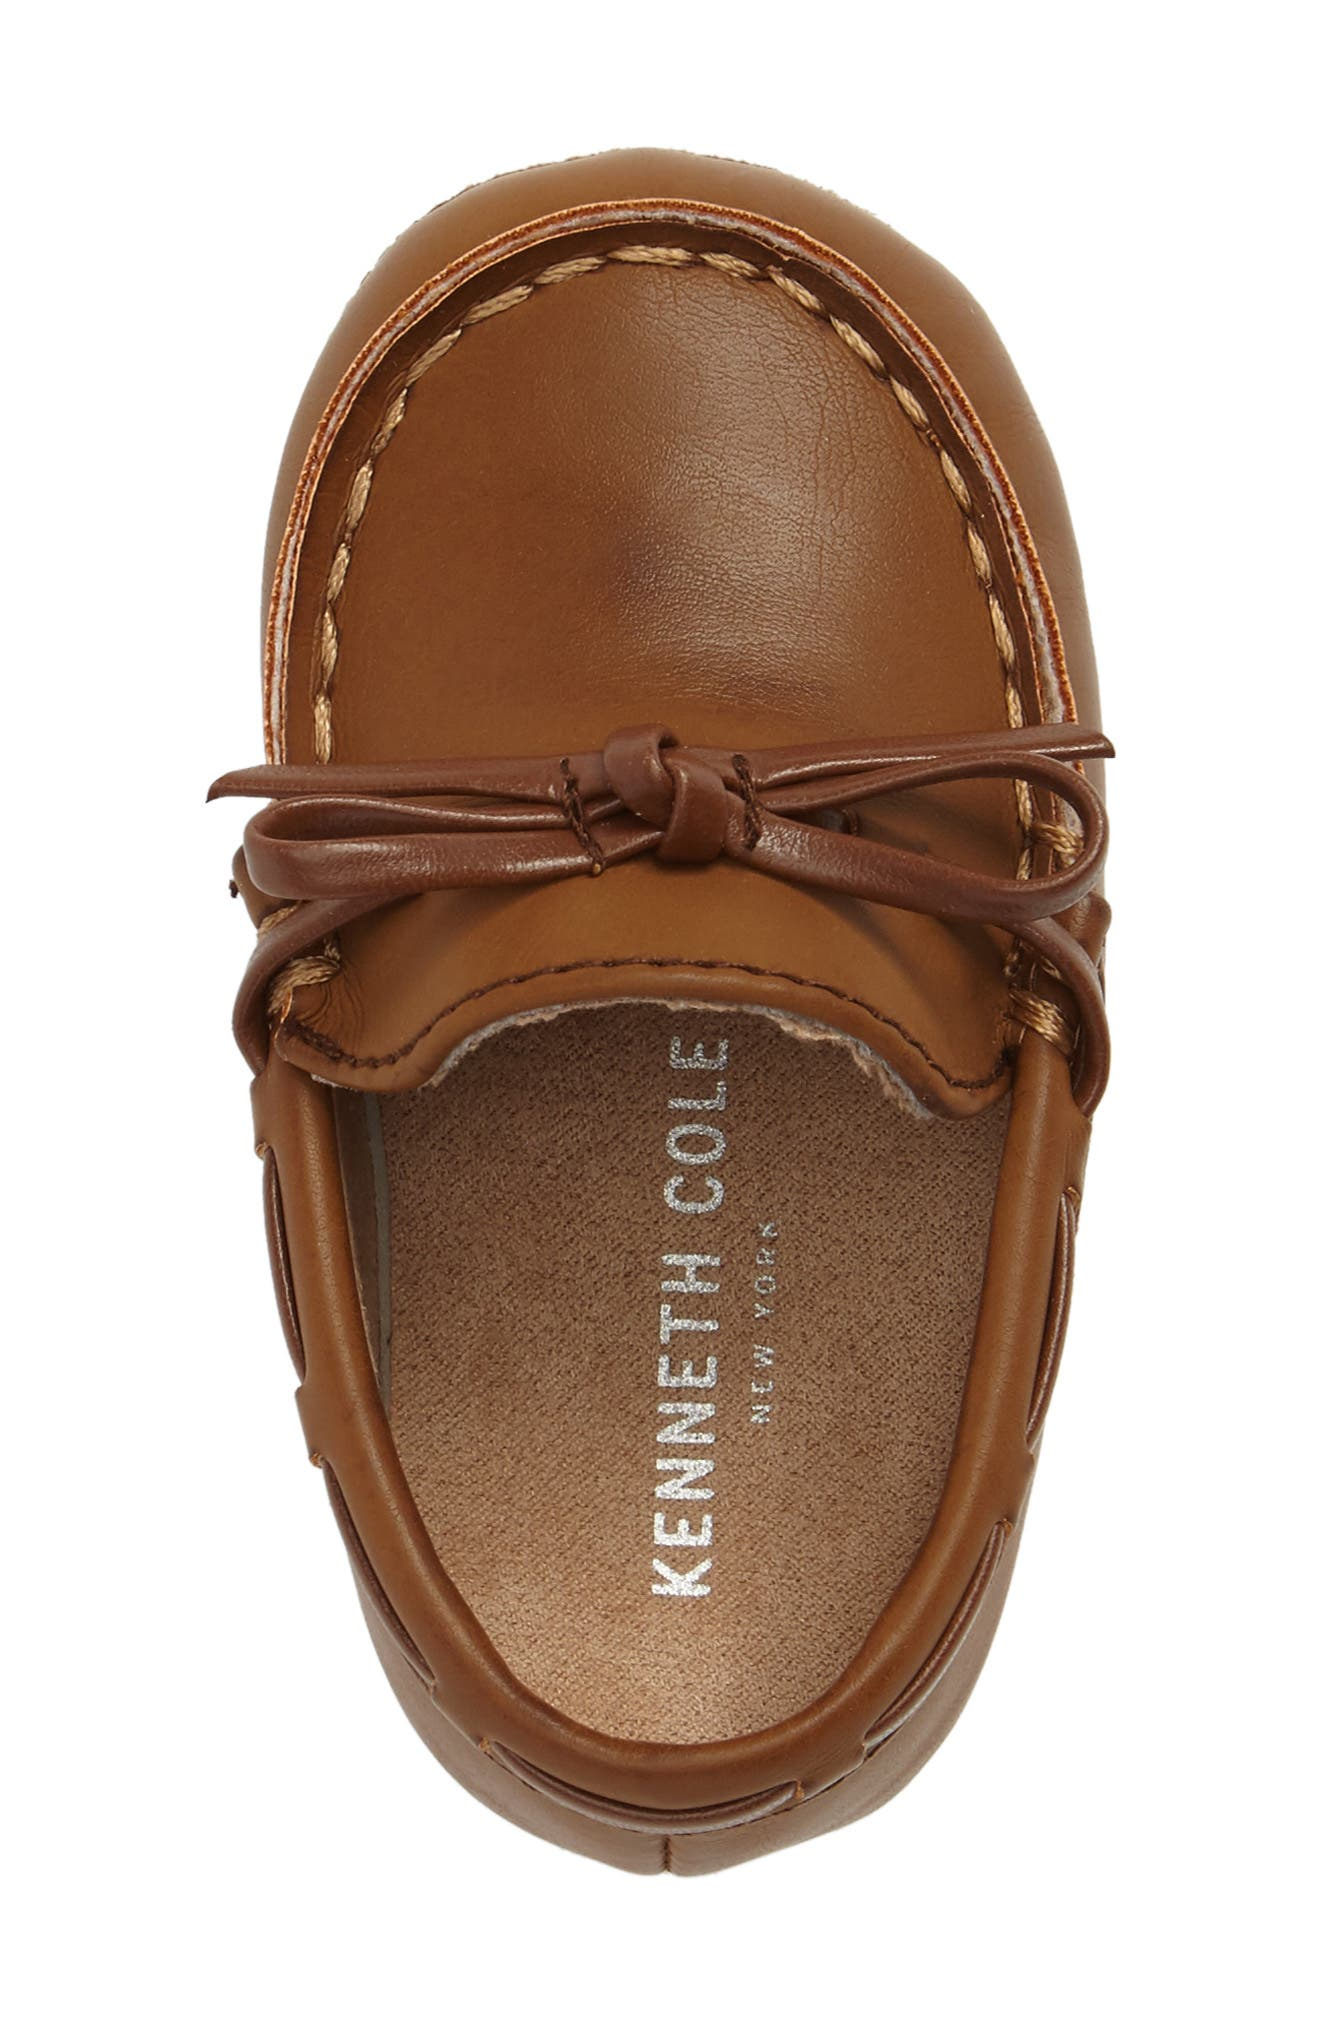 KENNETH COLE NEW YORK,                             Baby Boat Shoe,                             Alternate thumbnail 5, color,                             CARAMEL